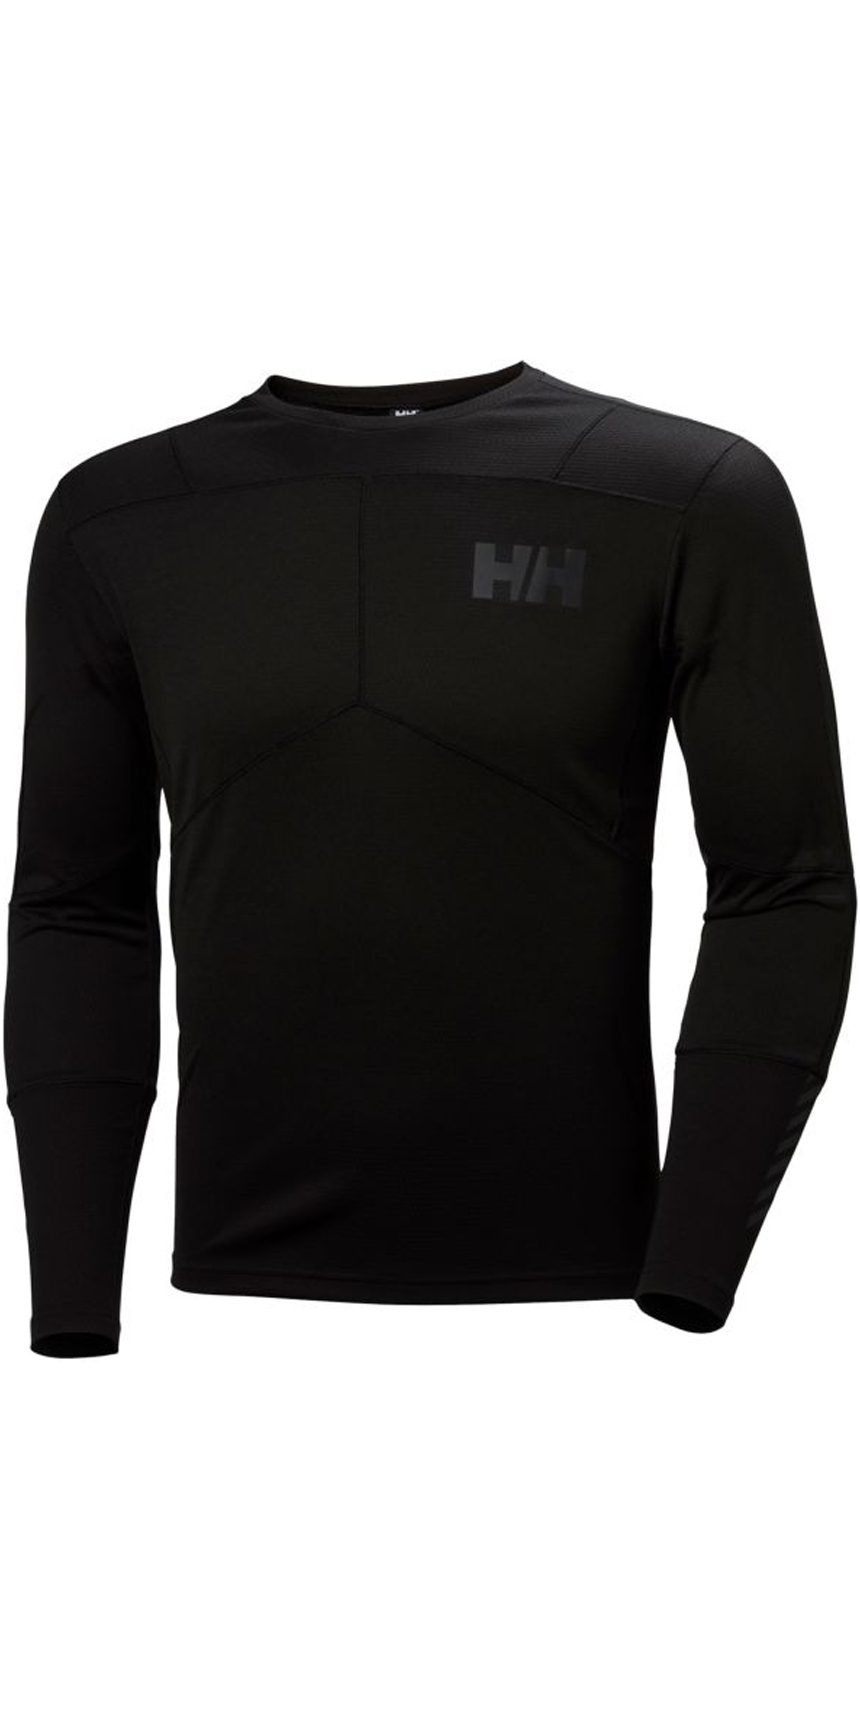 2019 Helly Hansen Lifa Active Crew Long Sleeve Base Layer Black 48308